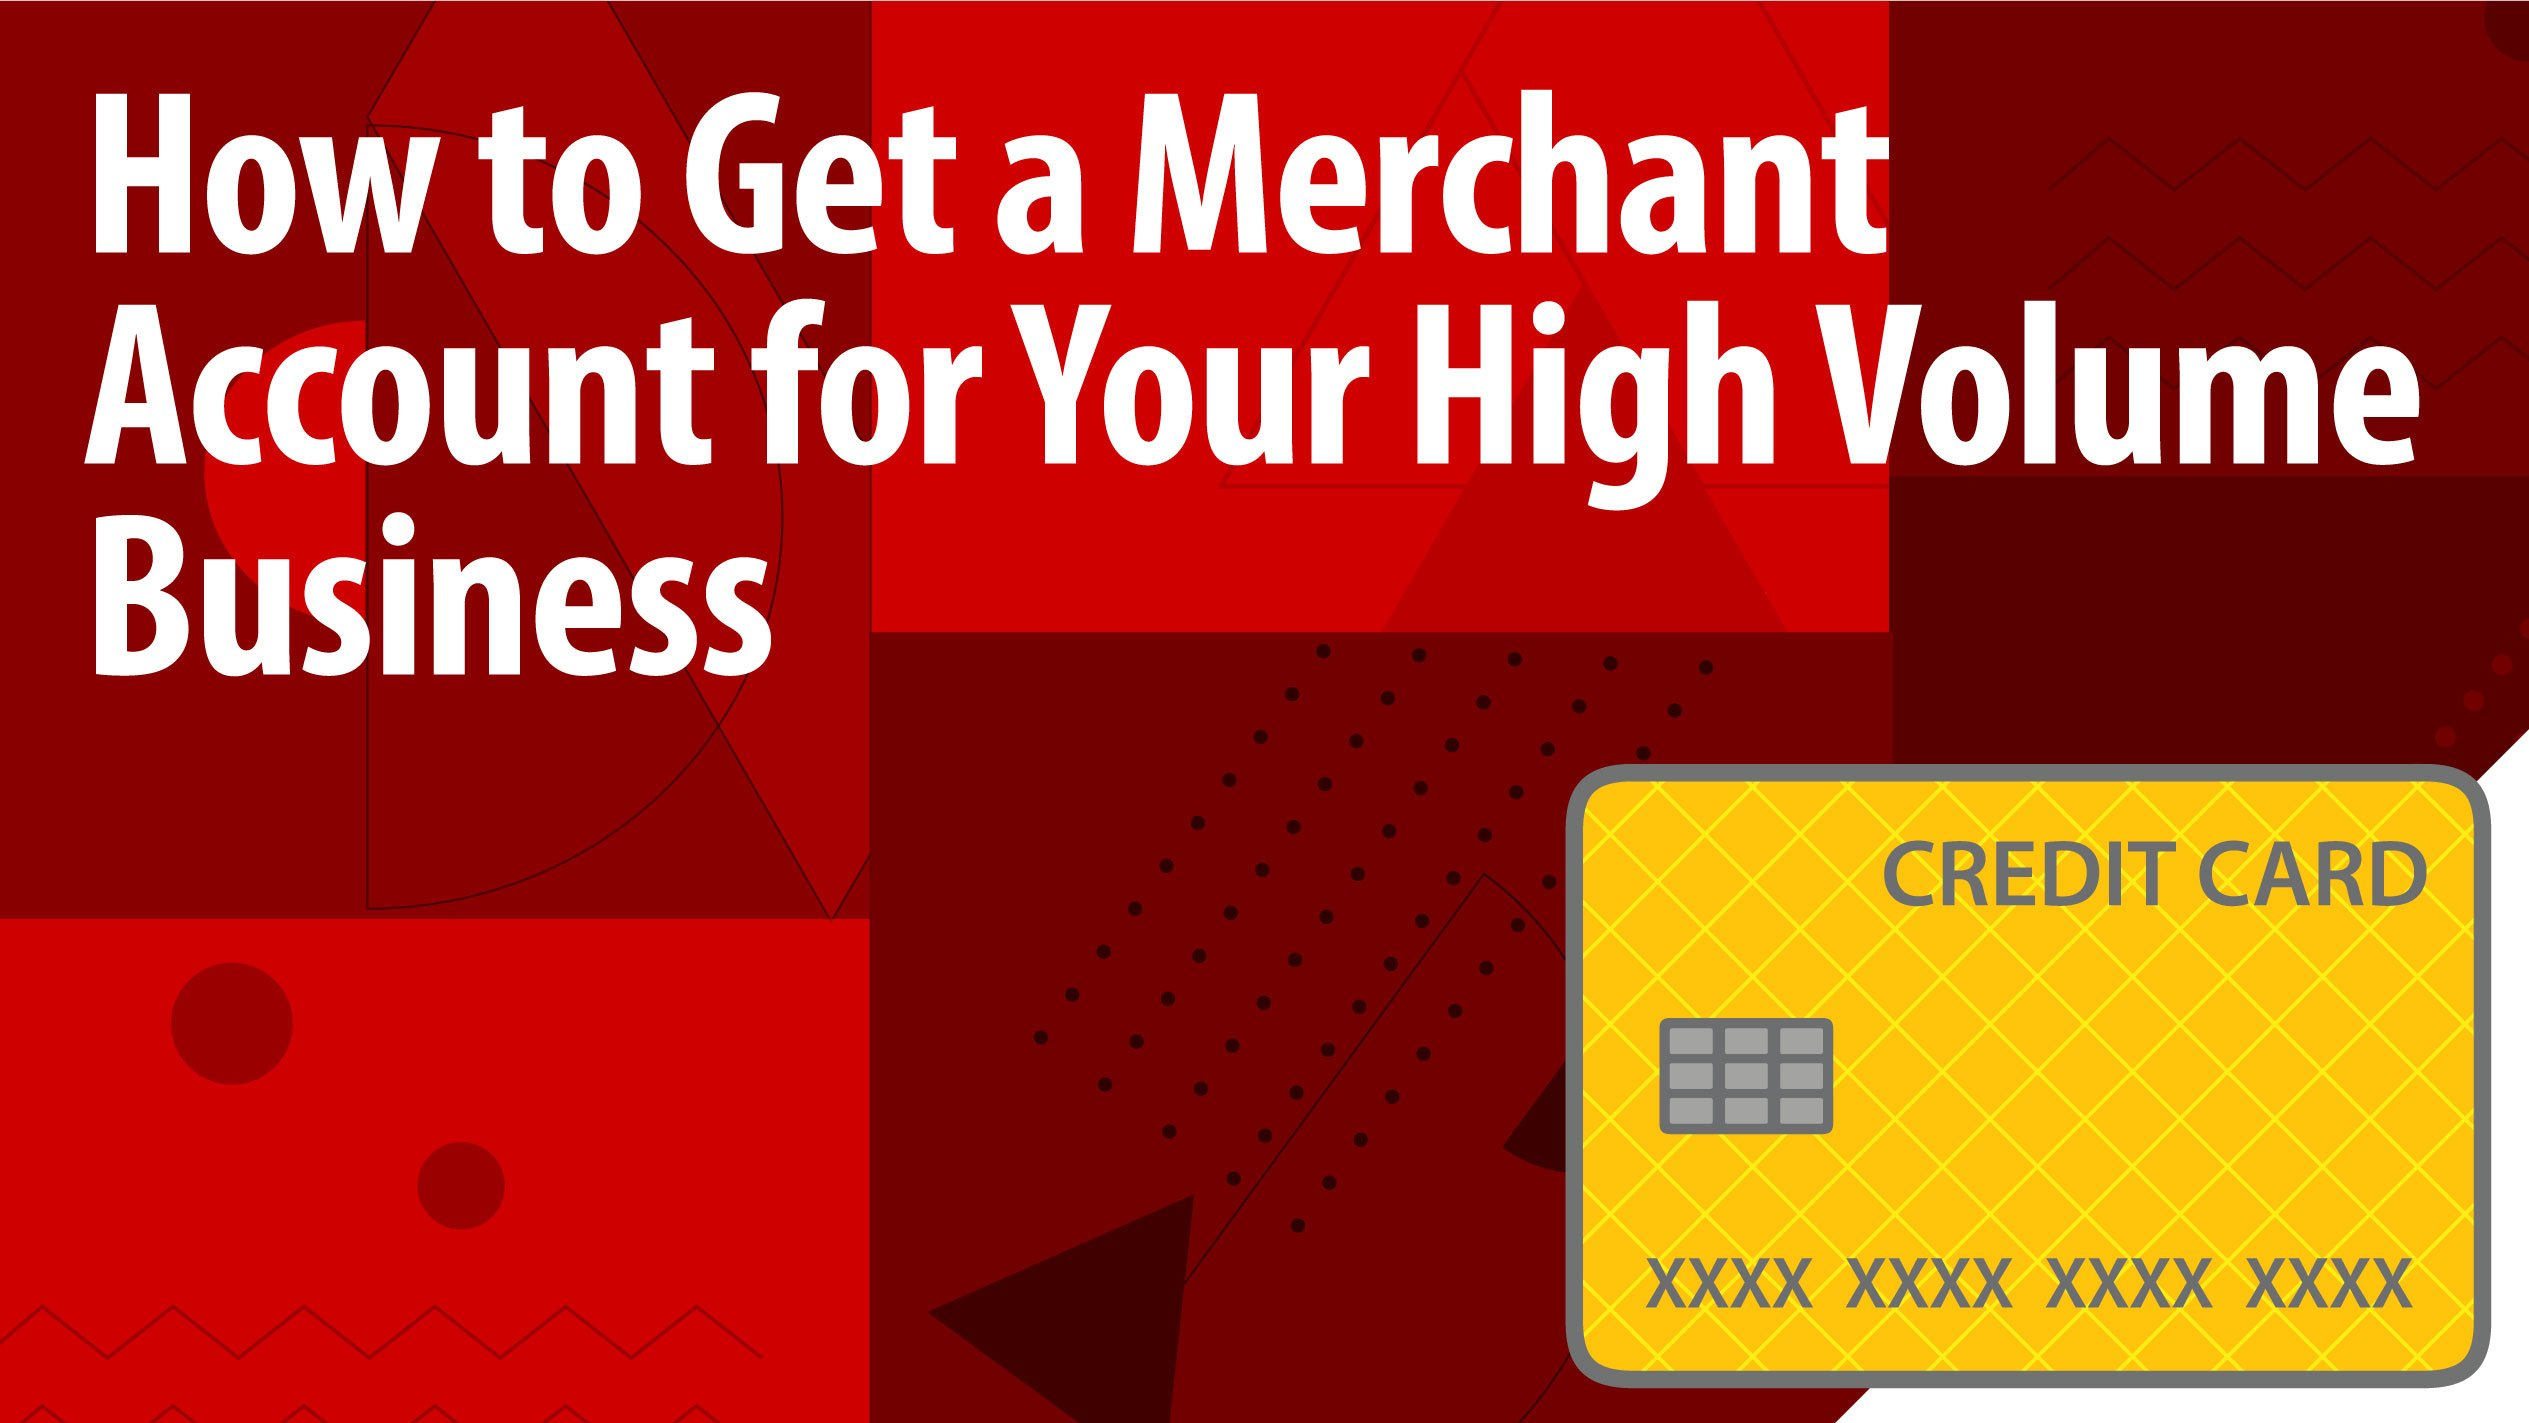 How to Get a Merchant Account for Your High Volume Business